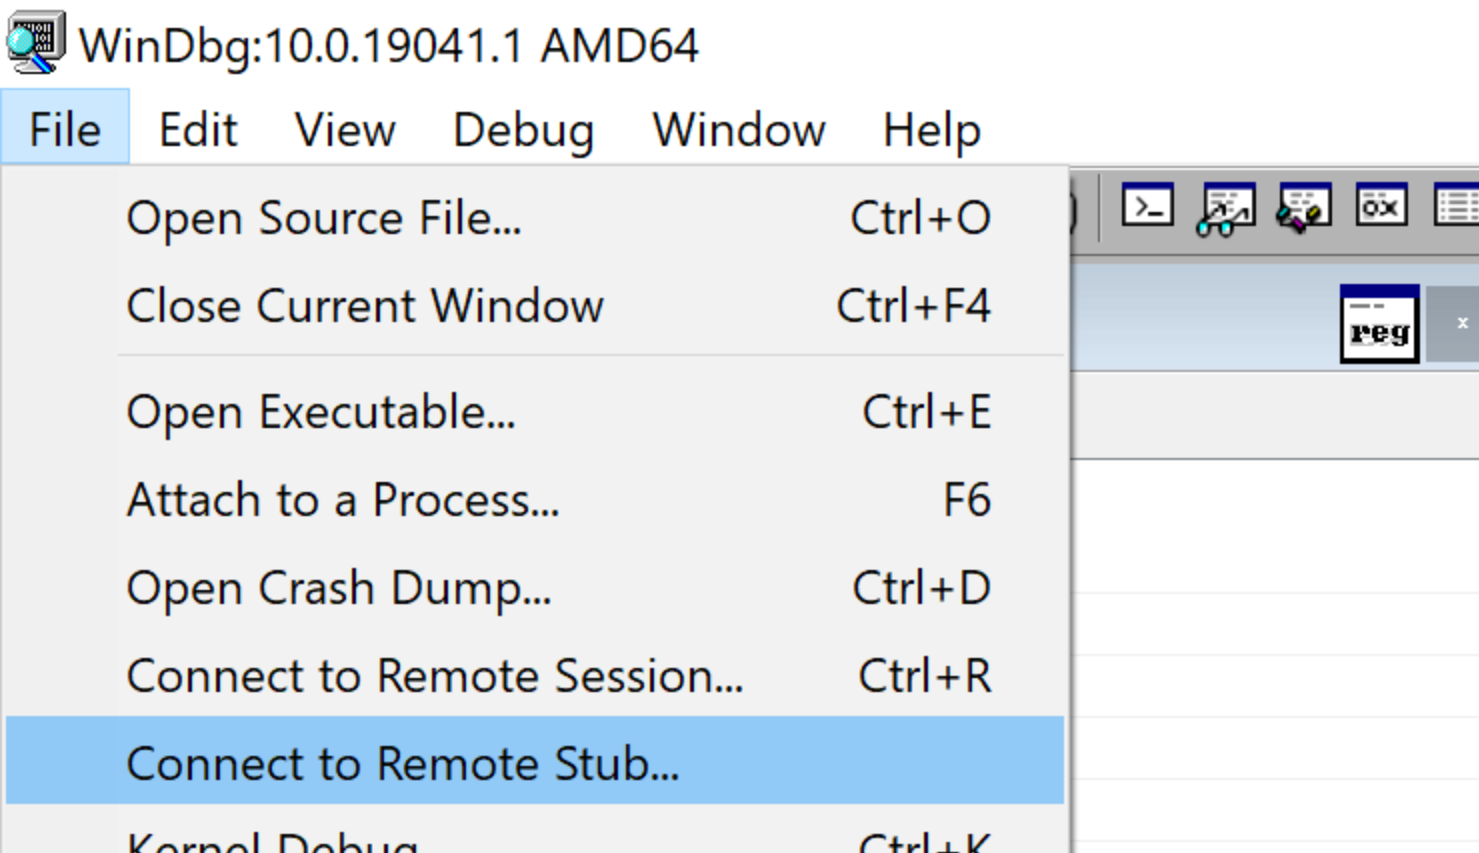 Connect to remote stub